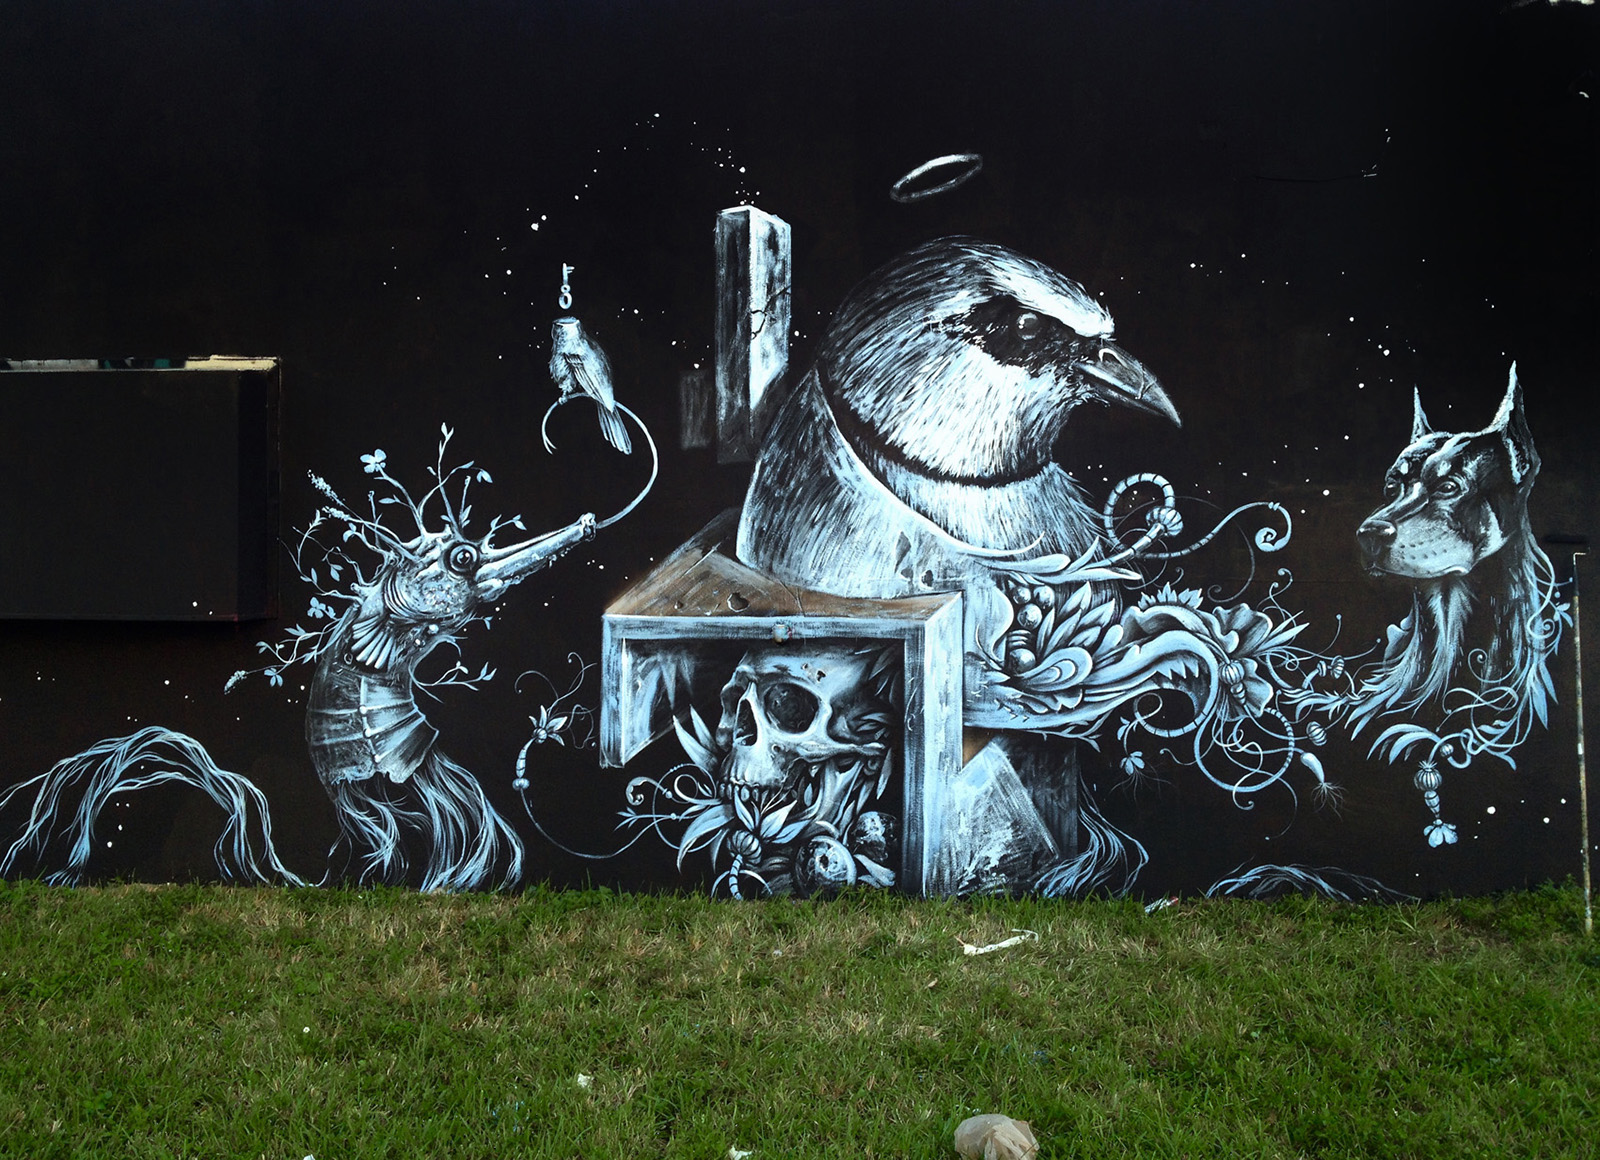 kraser-new-murals-for-art-basel-2014-01